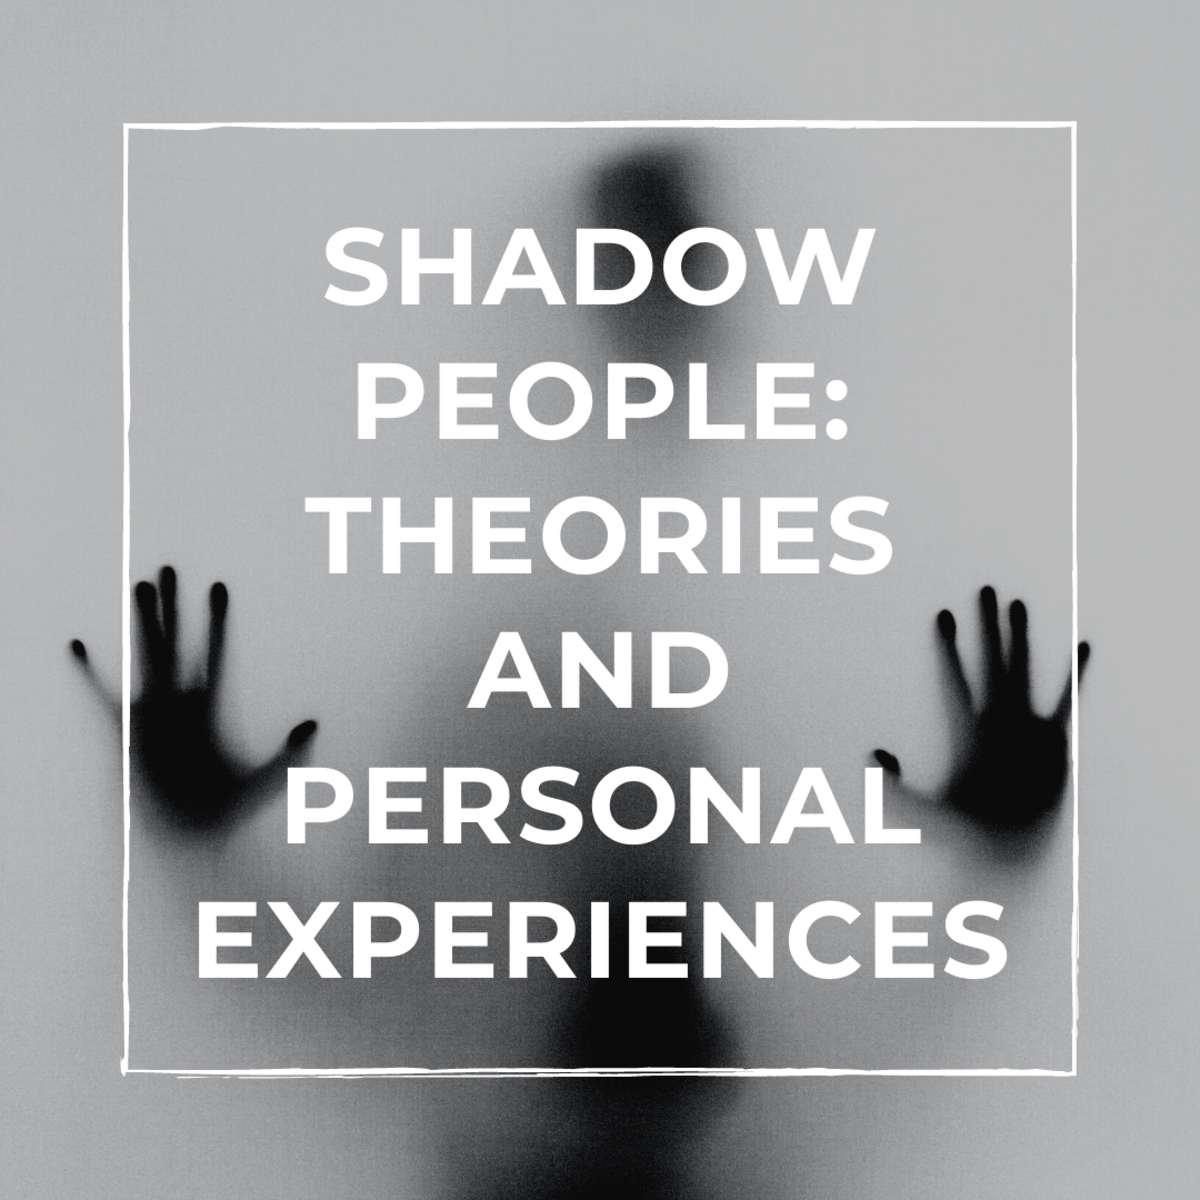 Read on to learn more about the shadow people mystery.